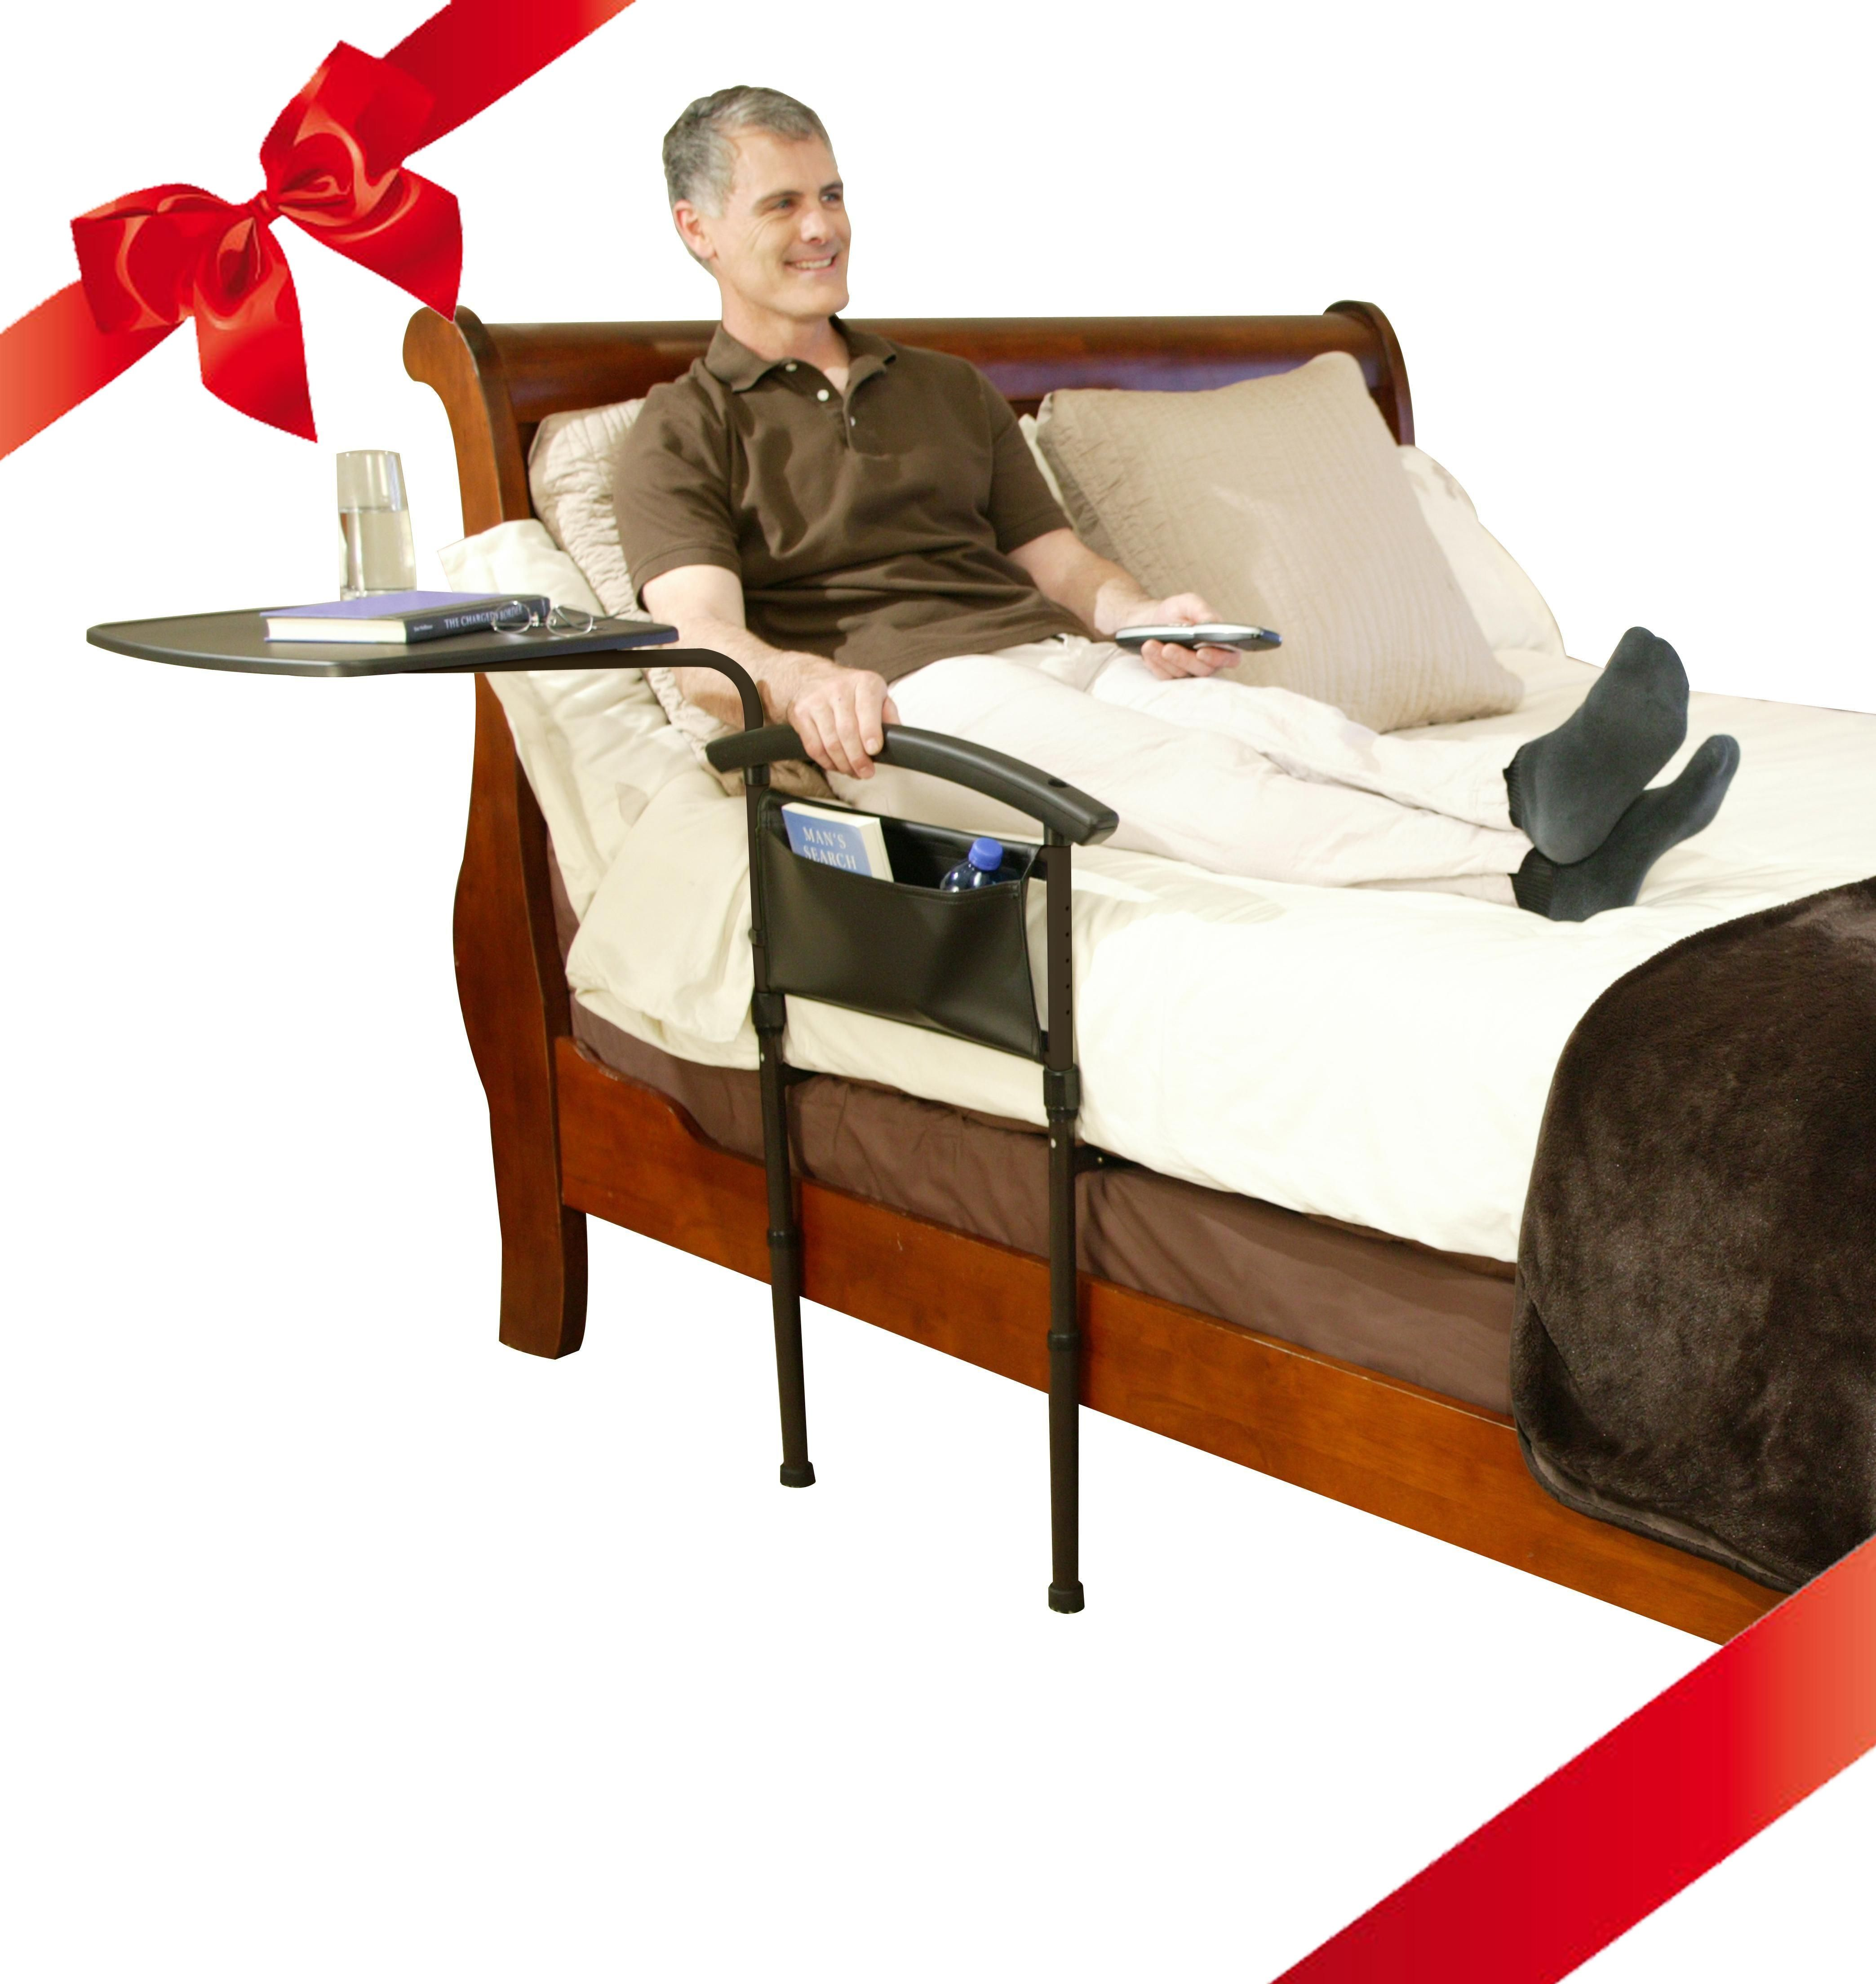 Stander Independence Bed Table 2 in 1 Overbed